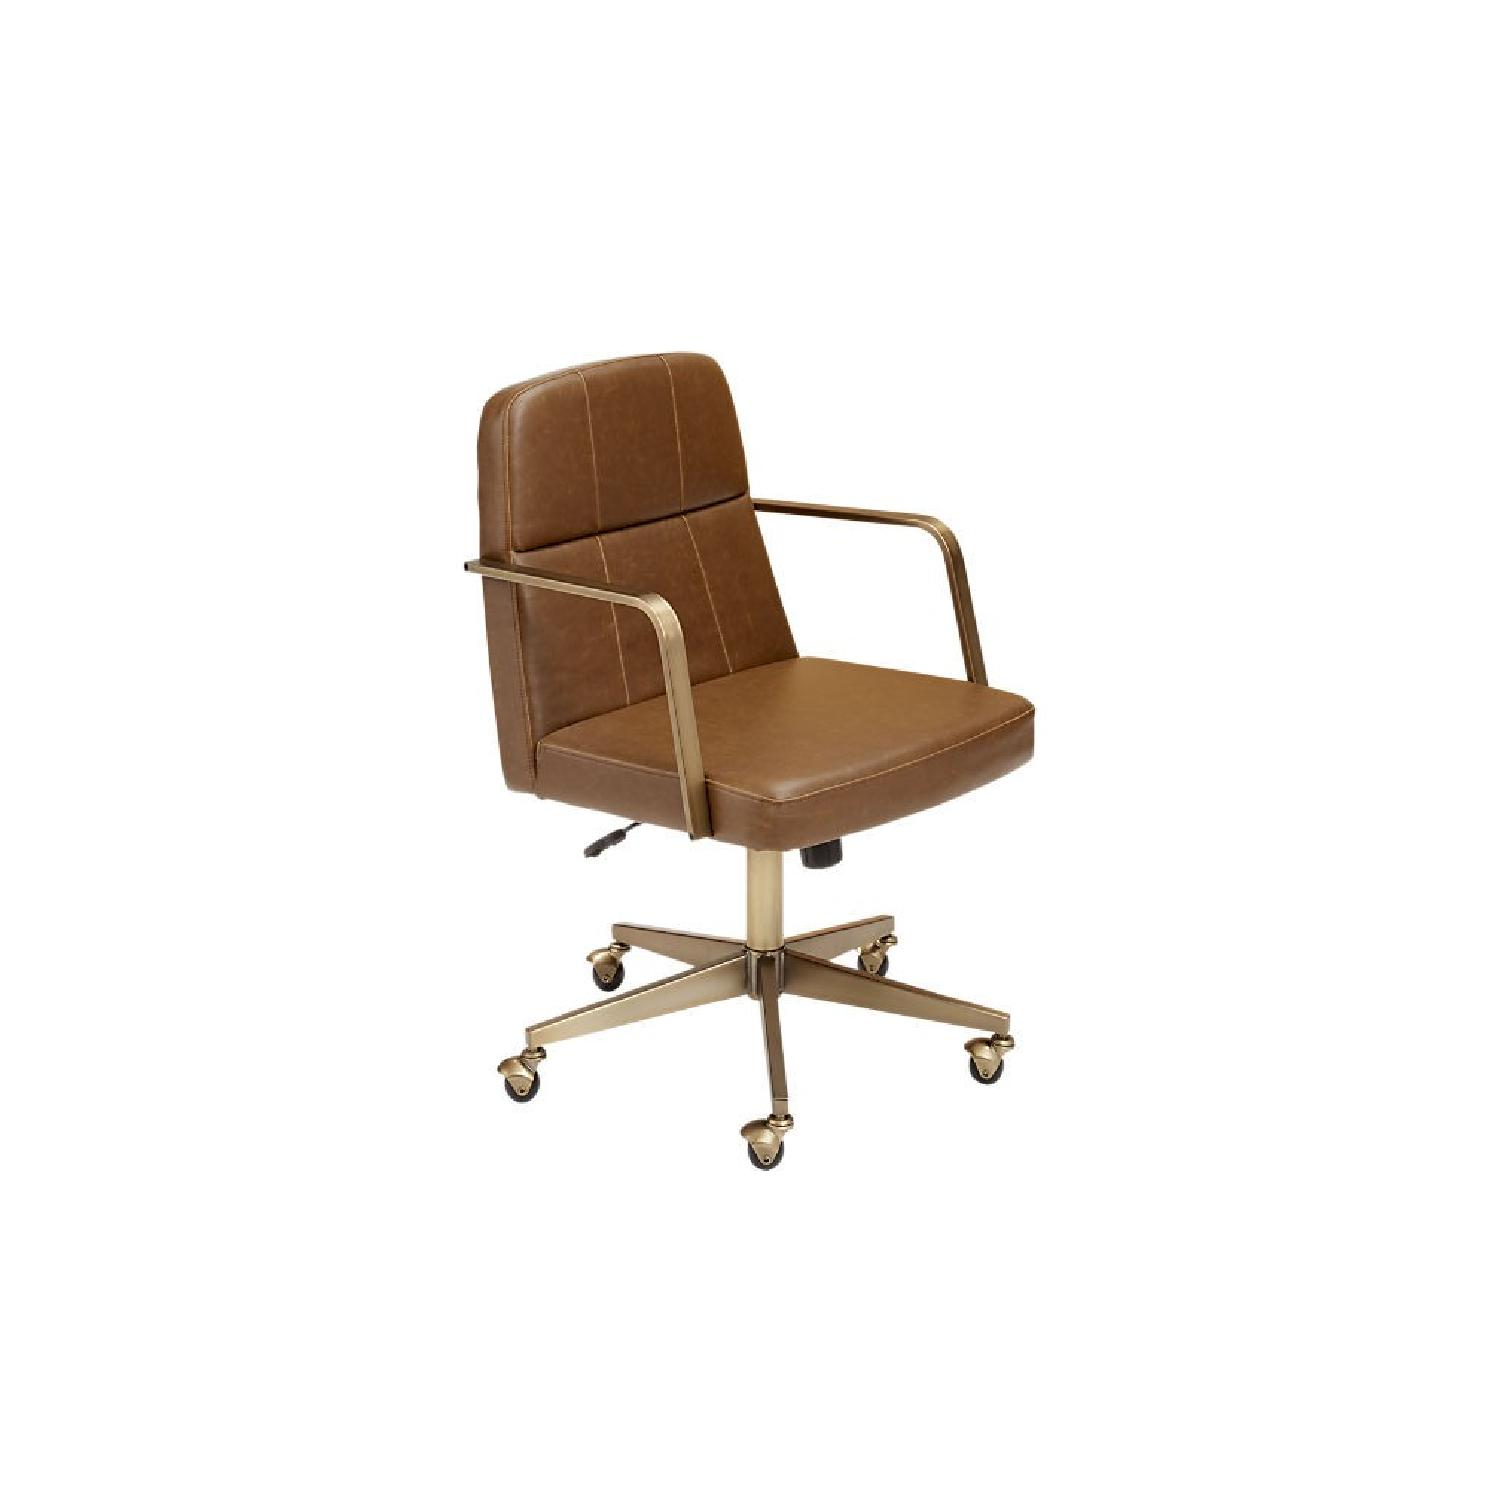 CB2 Draper Faux Leather Office Chair